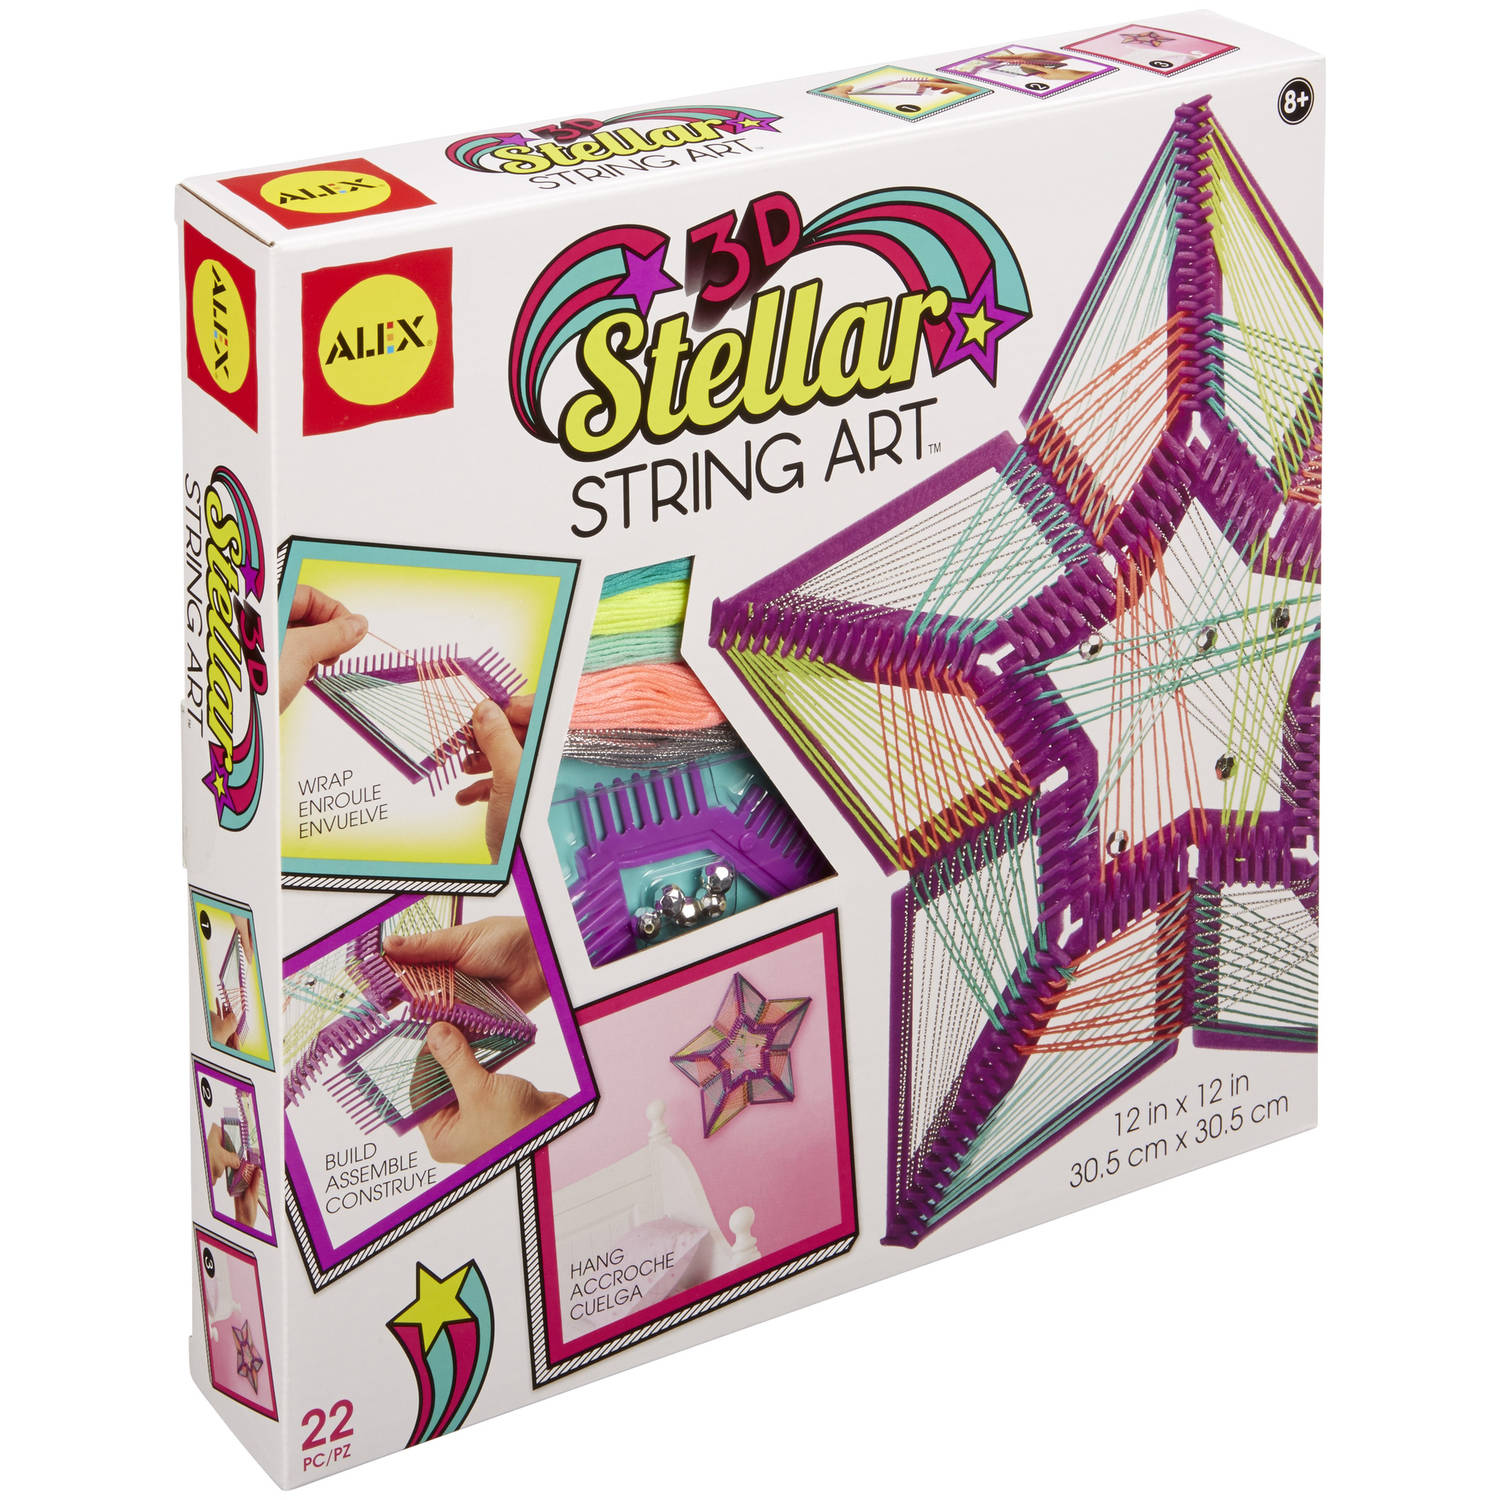 ALEX Toys Craft 3D Stellar String Art